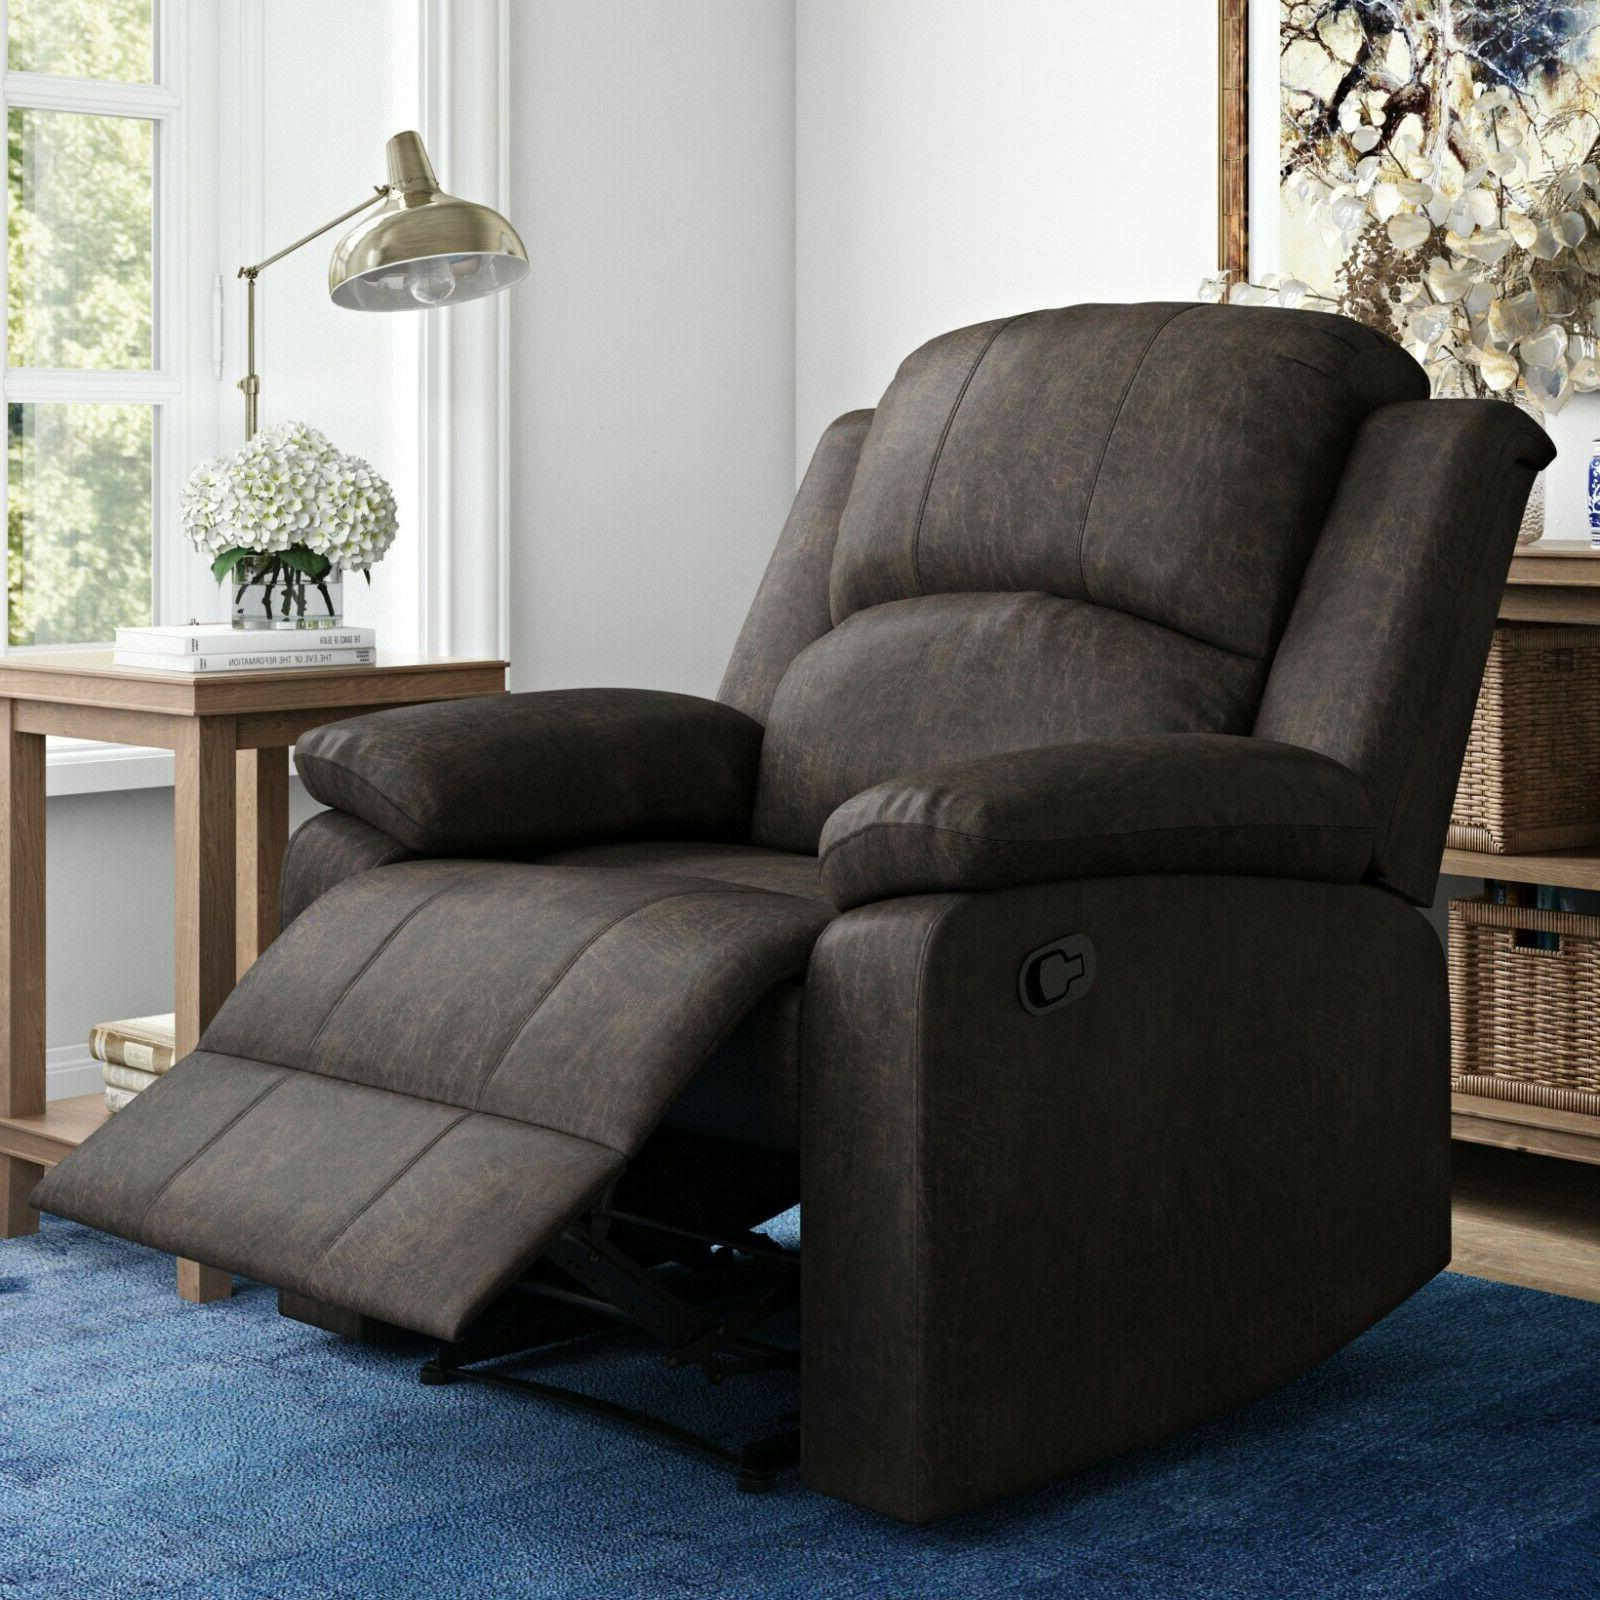 recliner armchair manual recline 3 positions brown